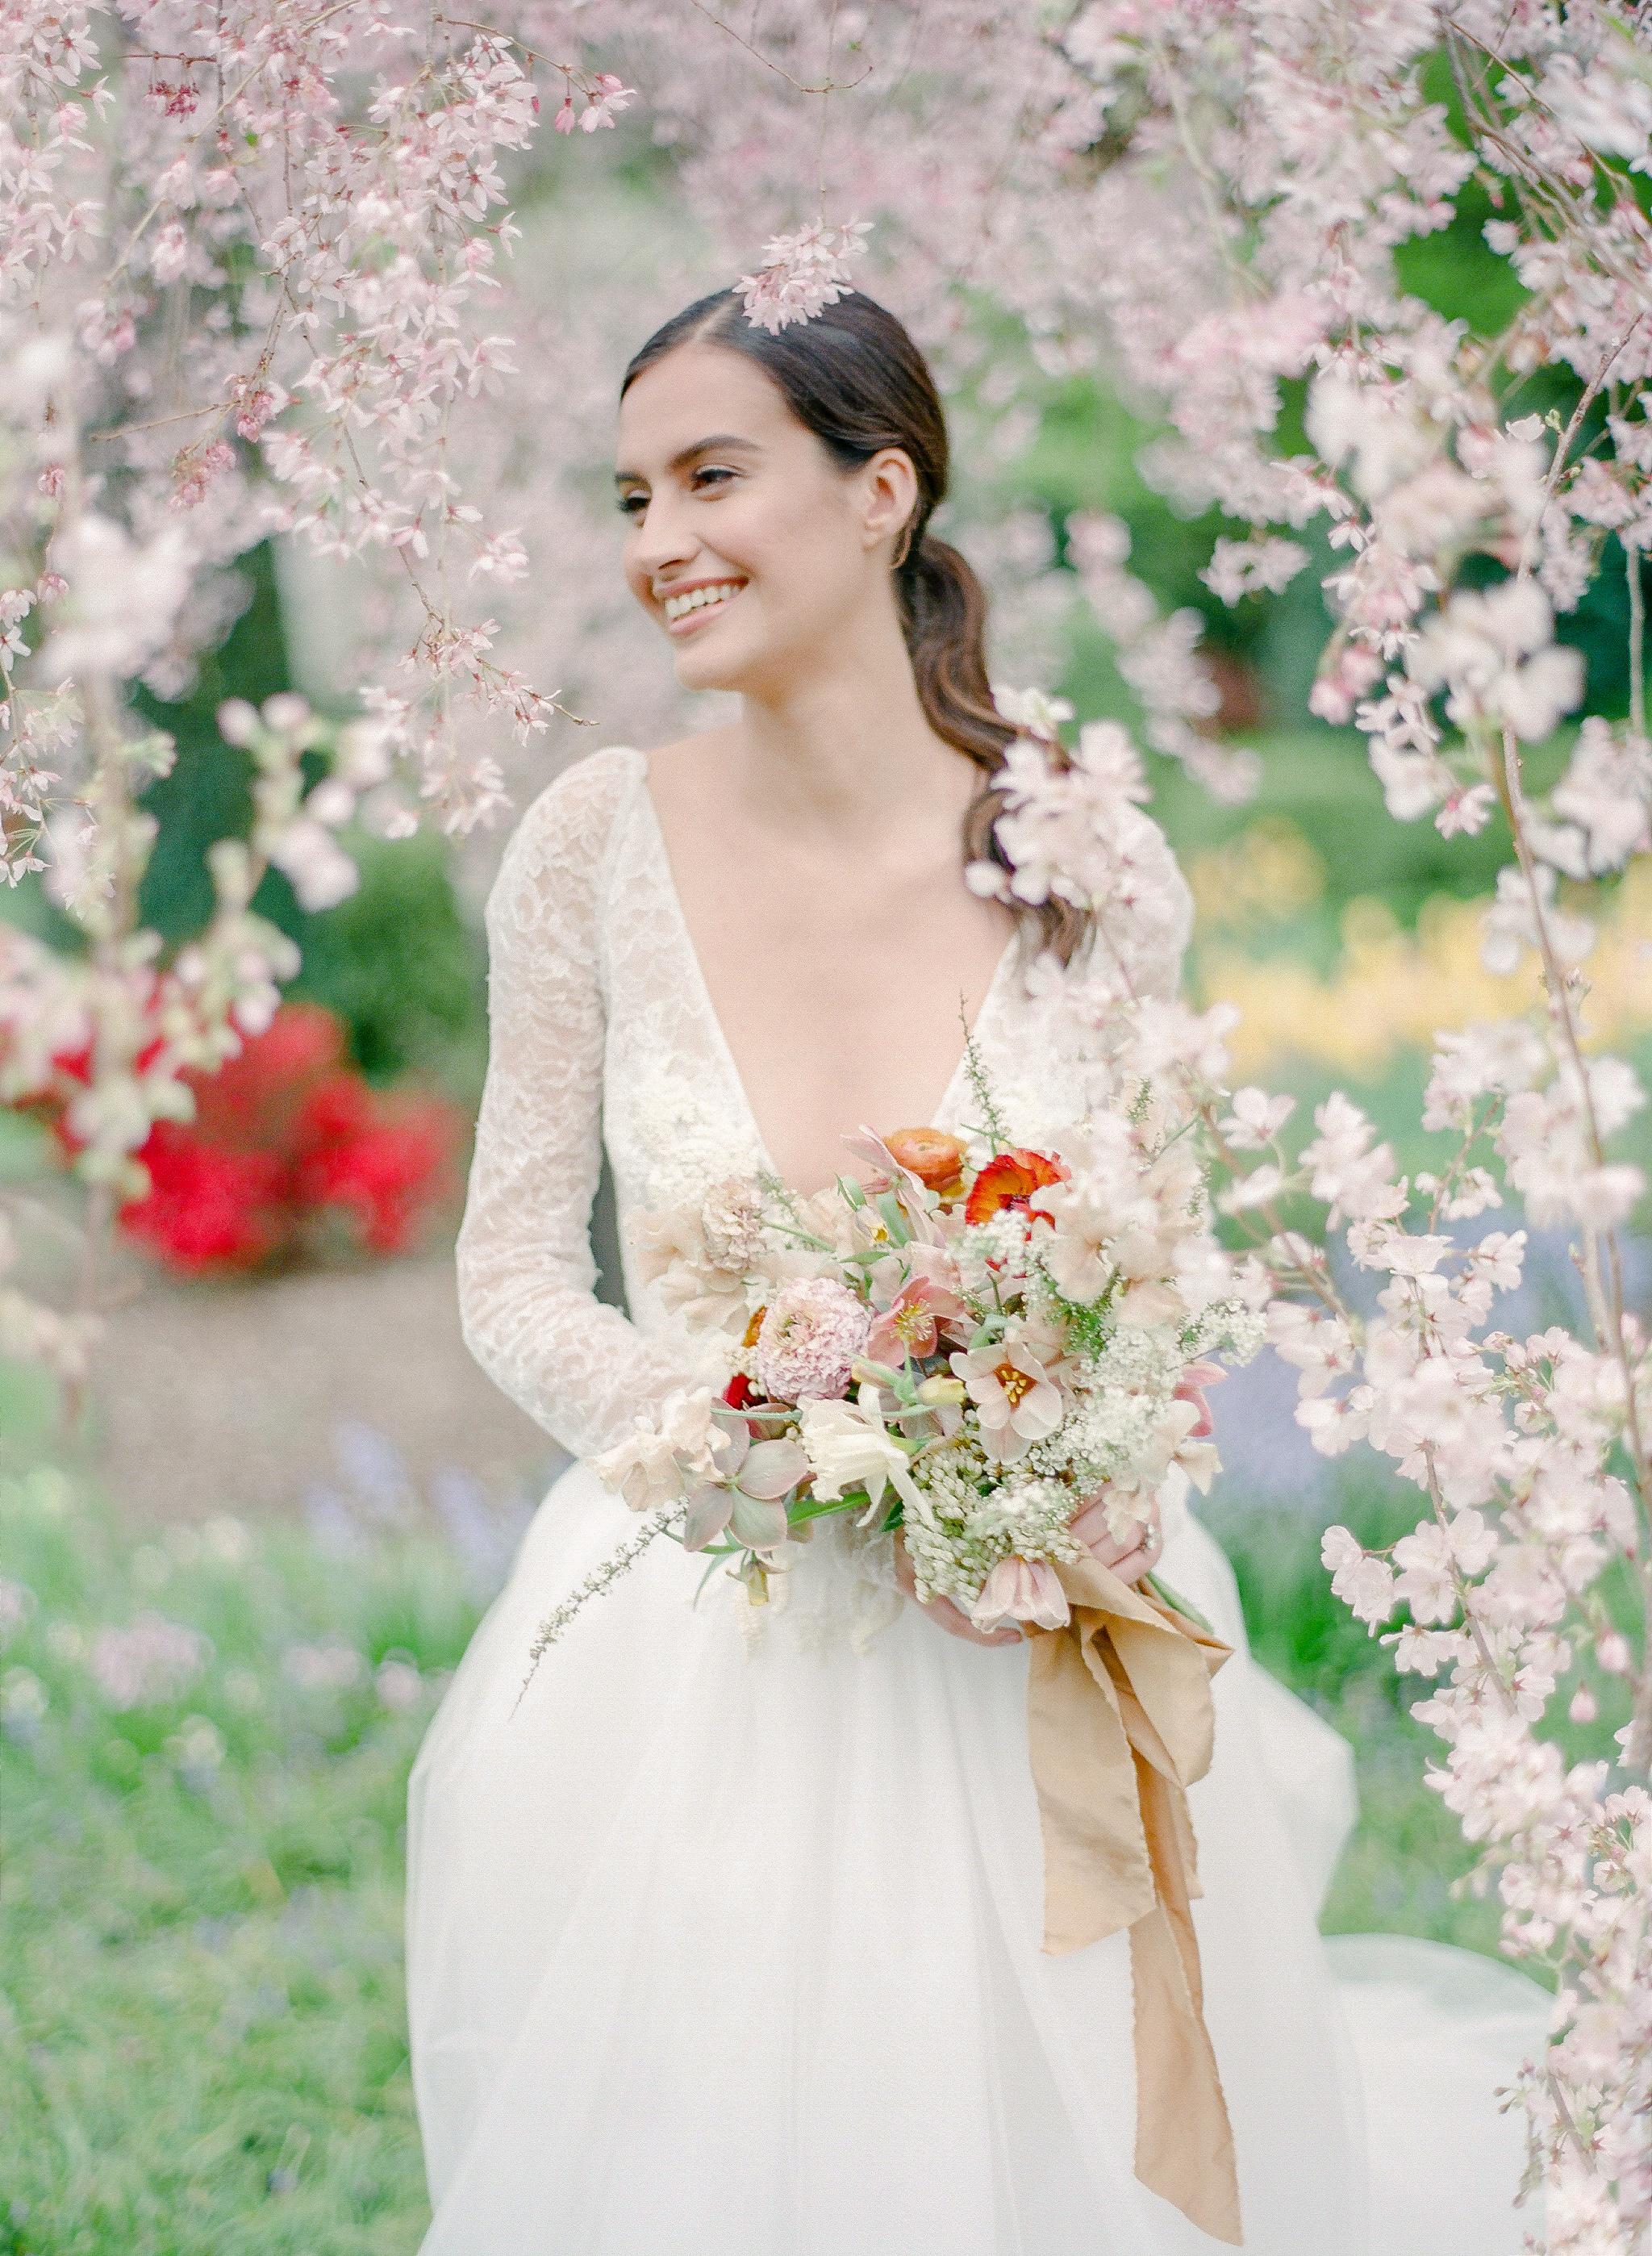 Filoli | Filoli Garden | Wedding | Amanda Crean Photography | Bustle Events | Vera Wang | Bride